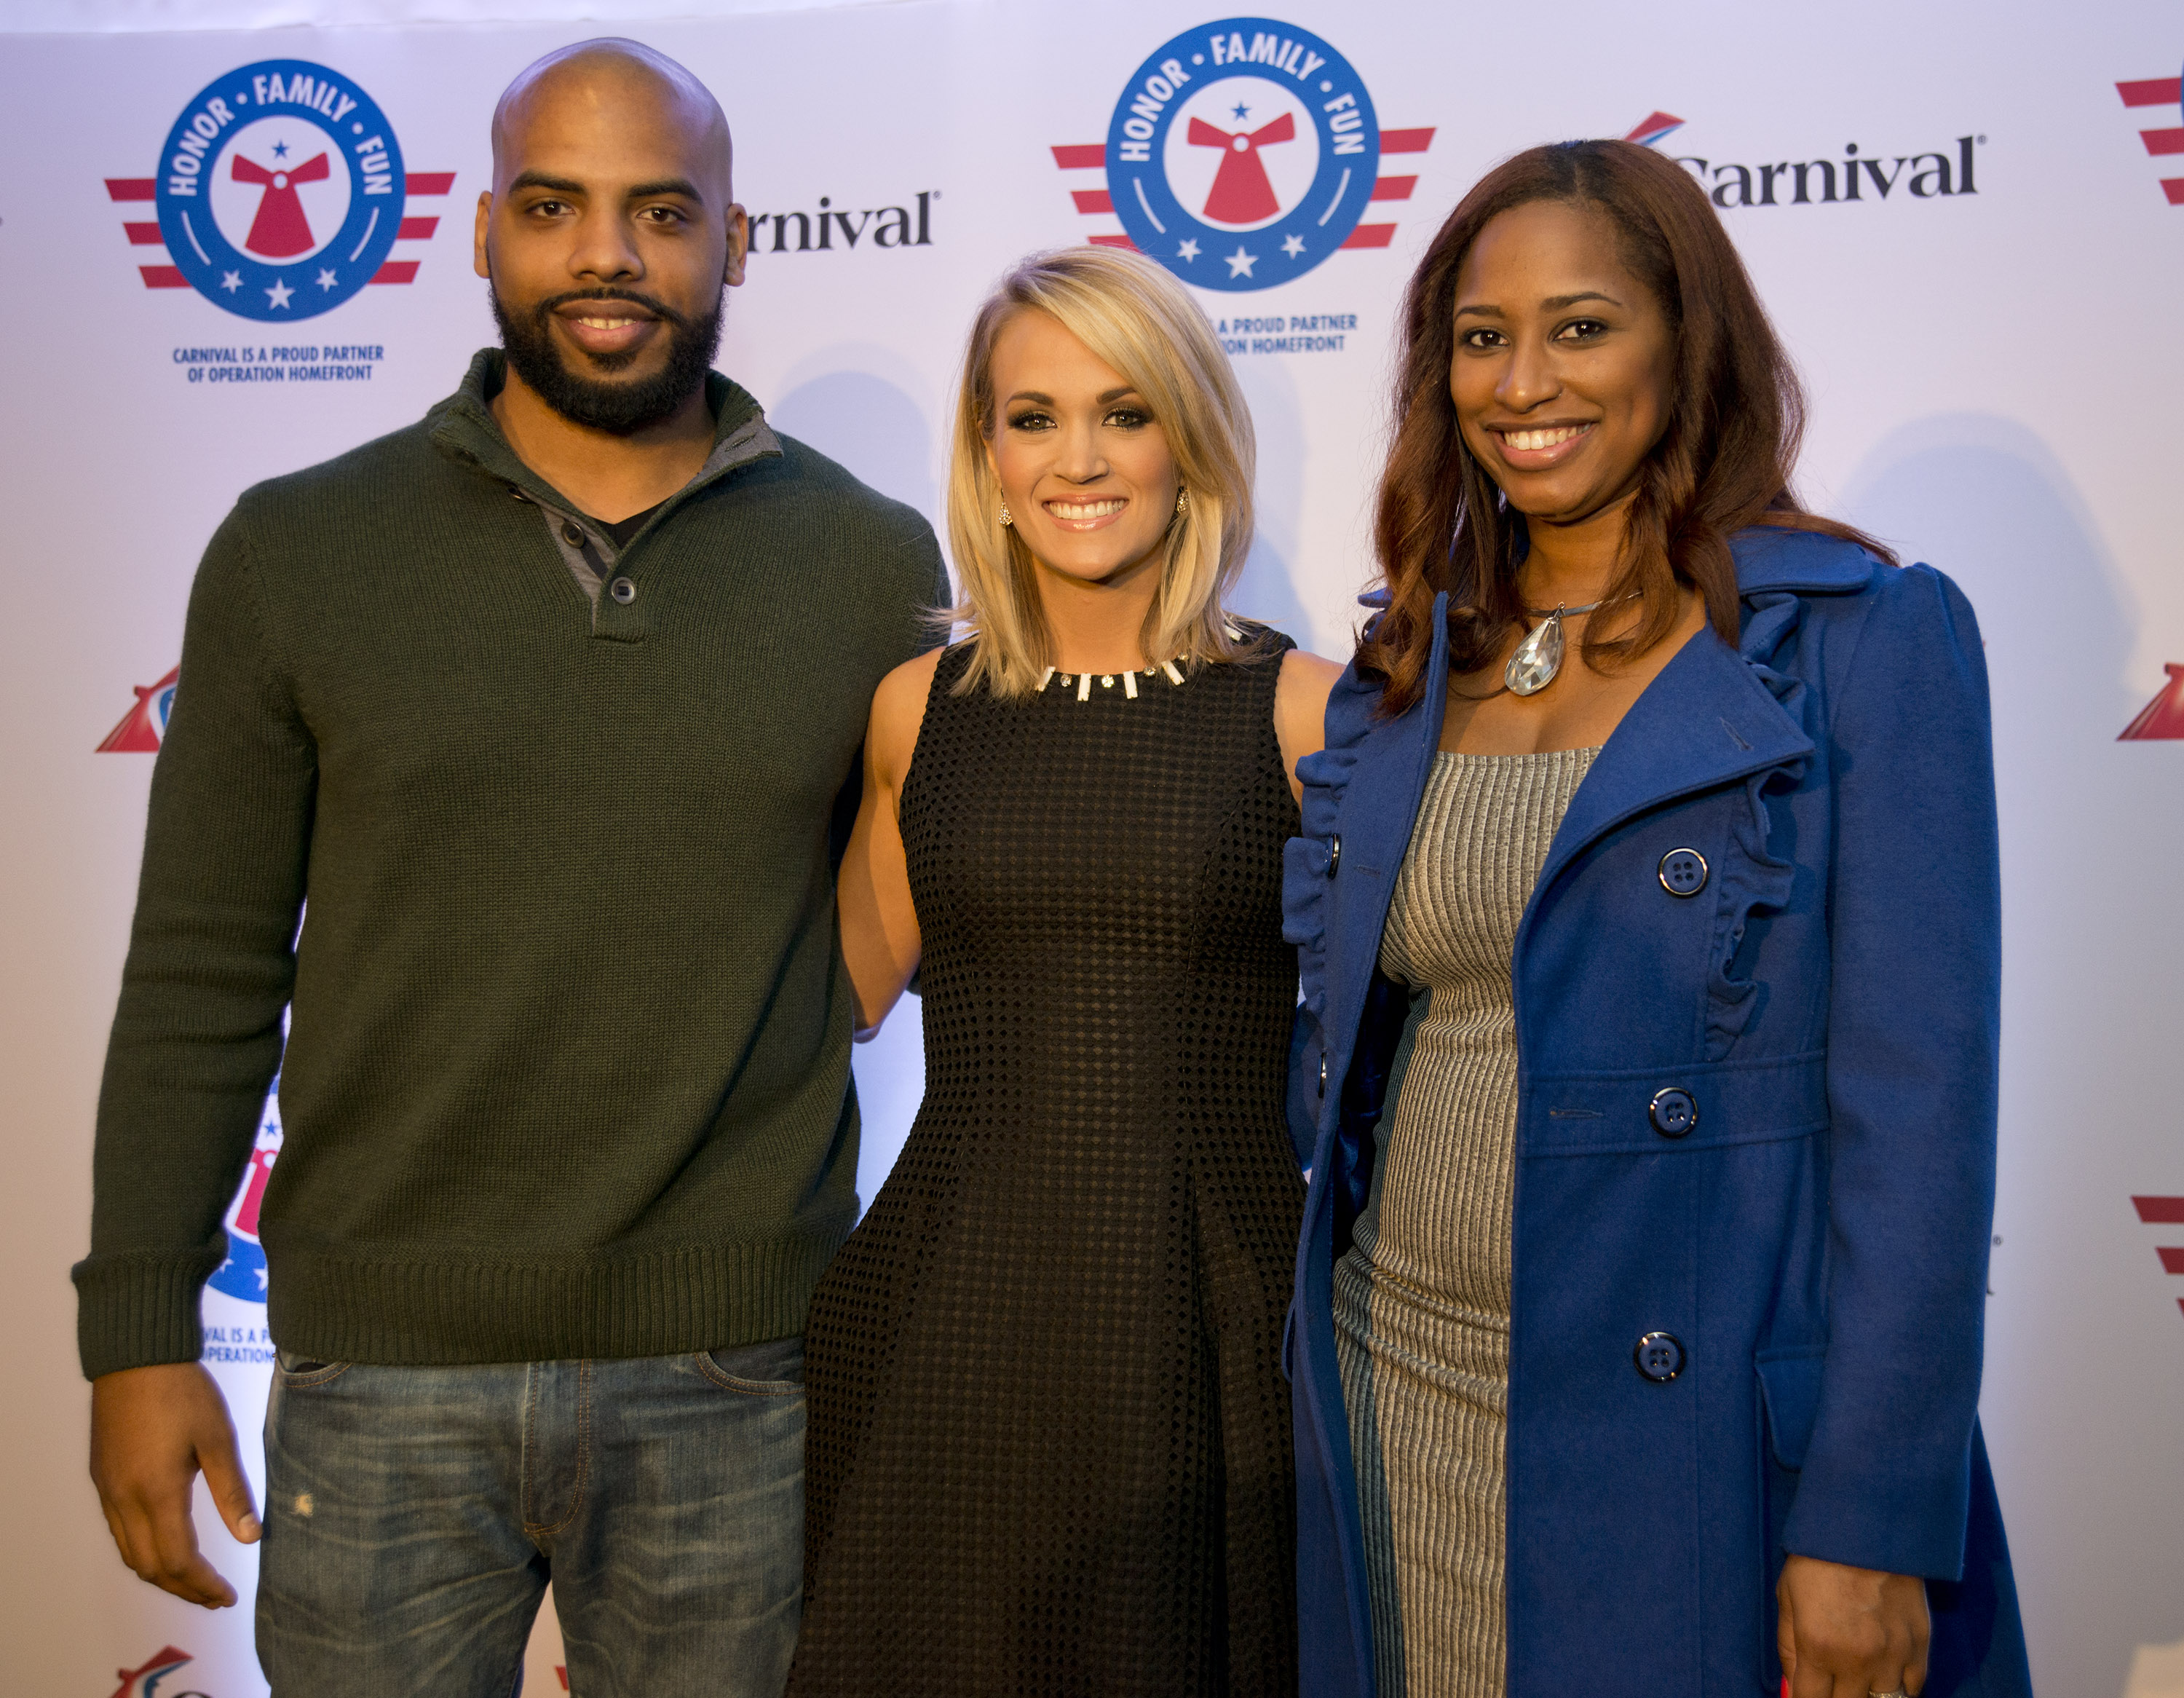 Carrie Underwood, center, poses with U.S. Navy Petty Officer Andrew Friedlander, left, and his wife Bryanne Friedlander, right, following a news conference Thursday, Jan. 28, 2016, in Jacksonville, Fla. The conference was staged to announce a new  partnership between Underwood, Operation Homefront and Carnival Cruise Line to support U.S. military families. The effort between the three entities is to raise funds through a series of projects during Underwood's concert tour and aboard Carnival's ships as well as the company's website. FOR EDITORIAL USE ONLY (Andy Newman/Carnival Cruise Line/HO)